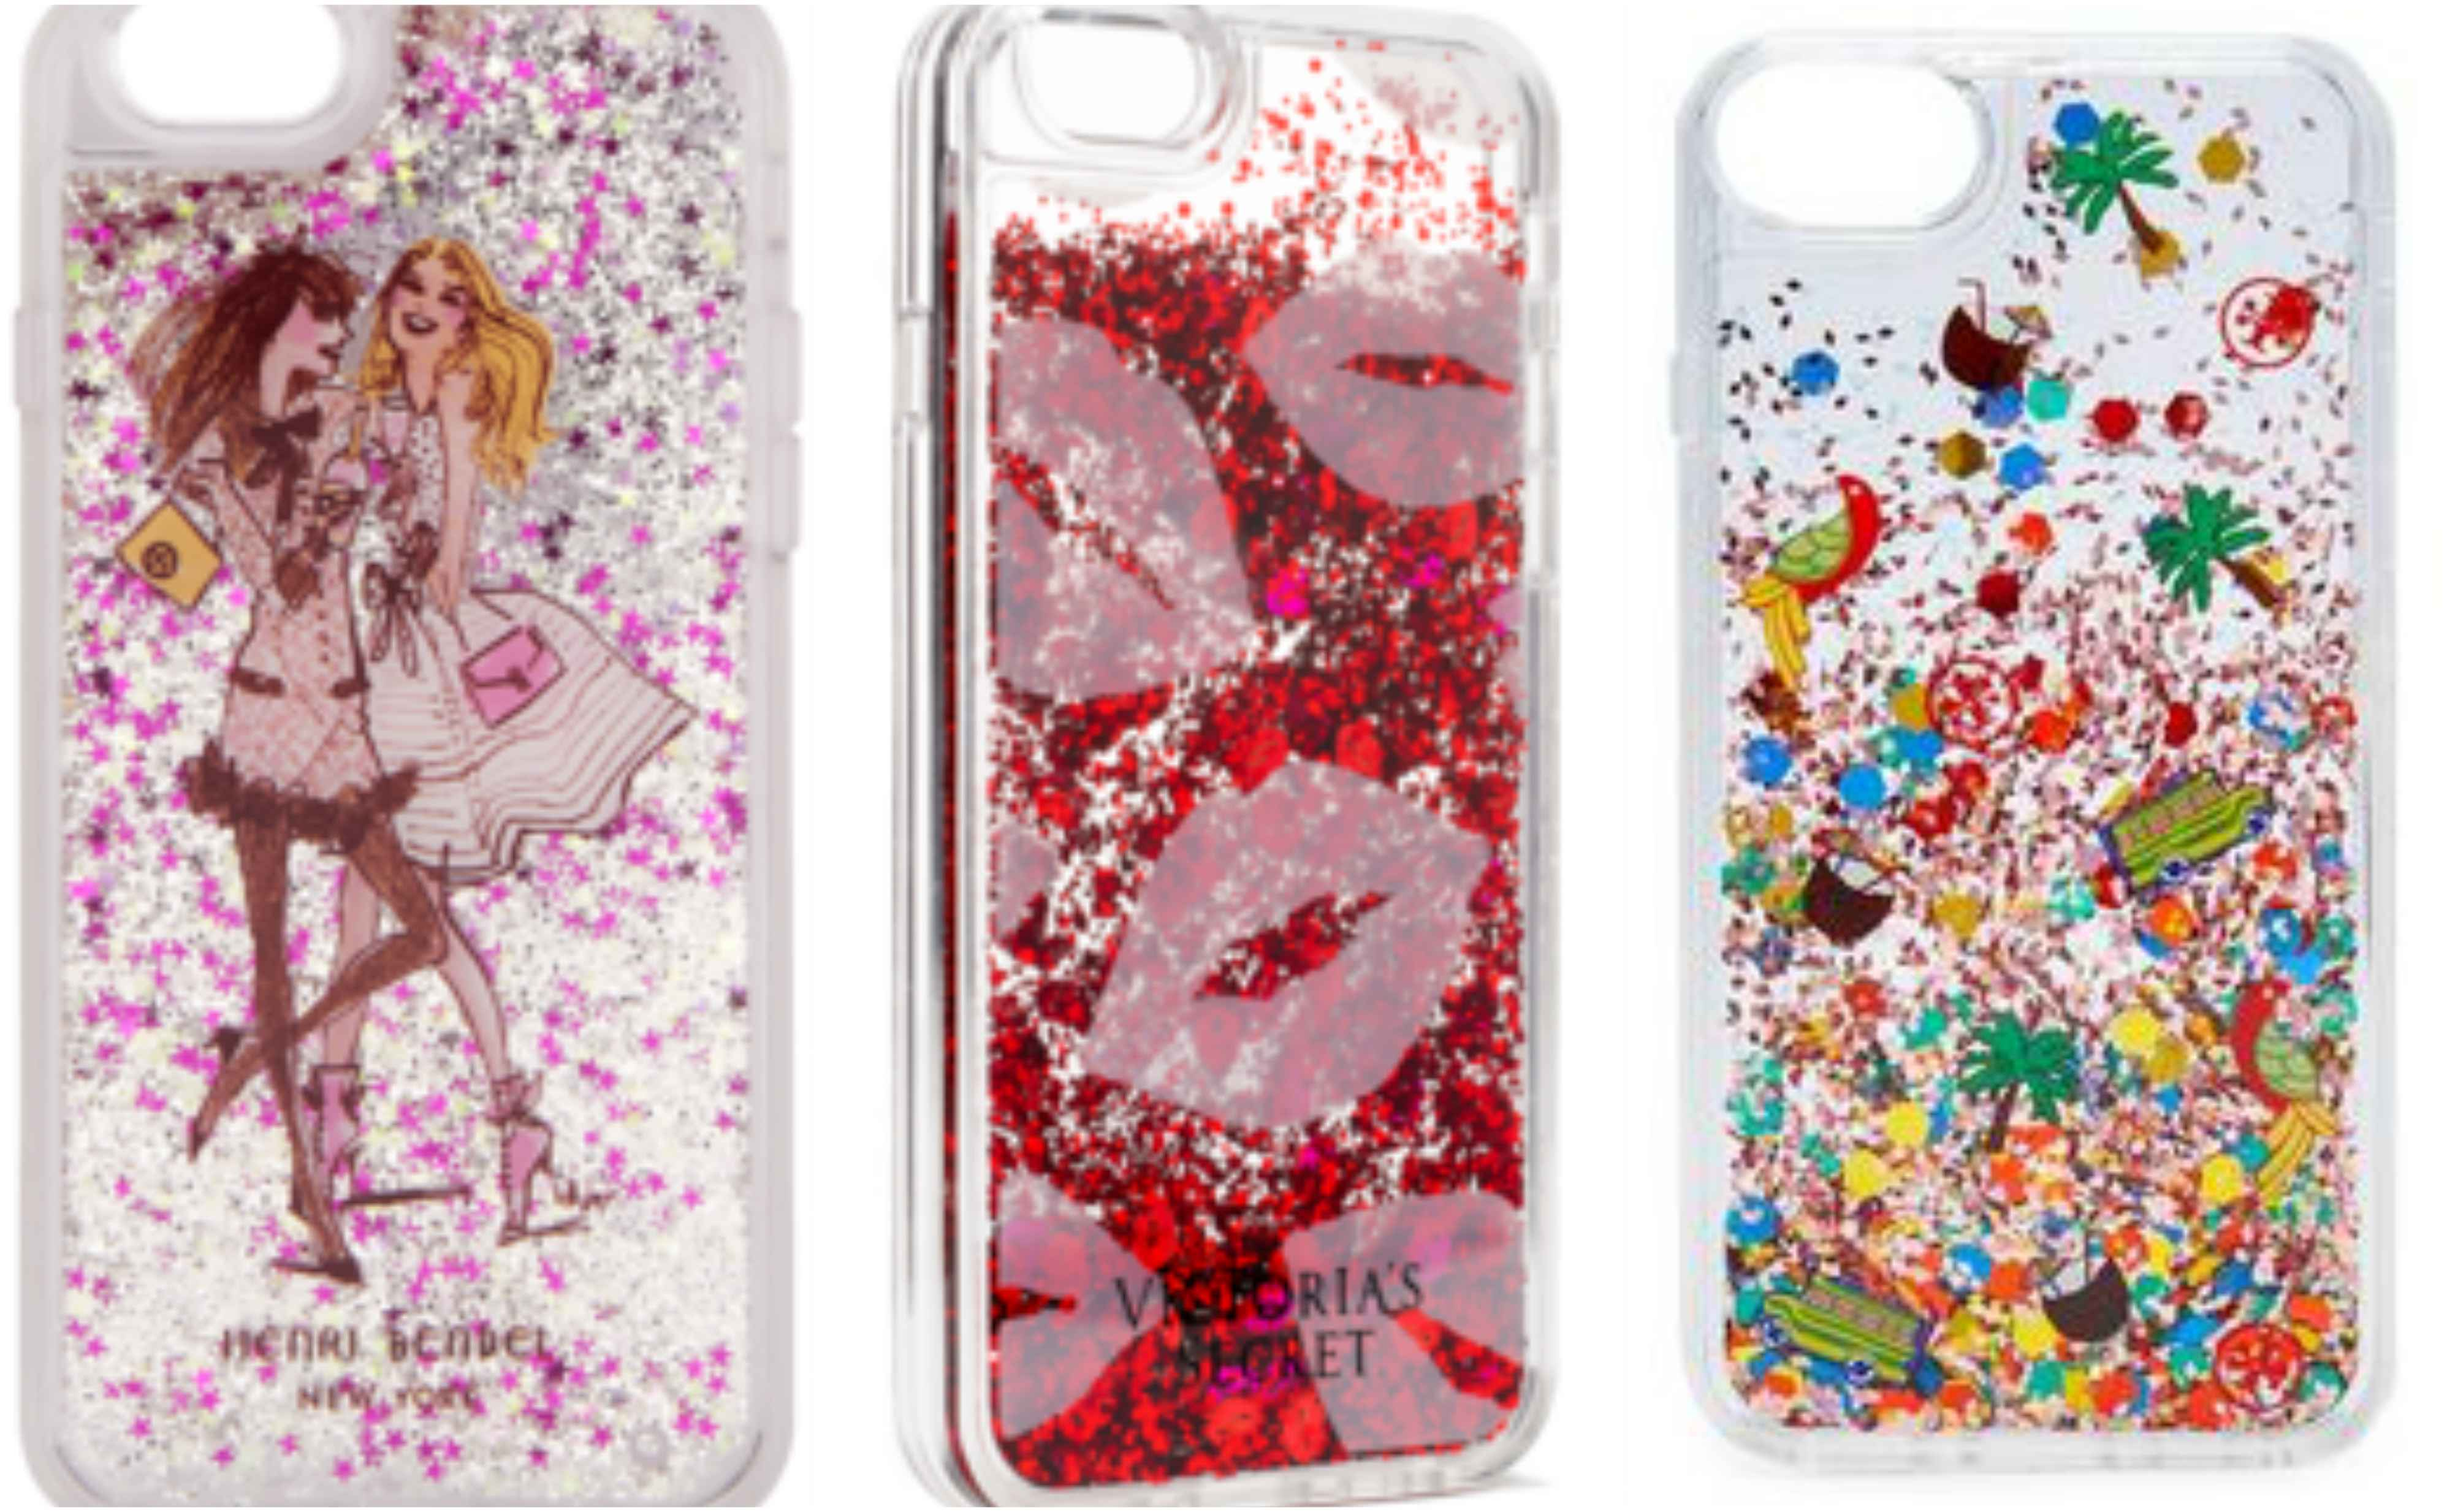 on sale 0507e 0ed77 iPhone glitter cases recalled over reports of chemical burns ...